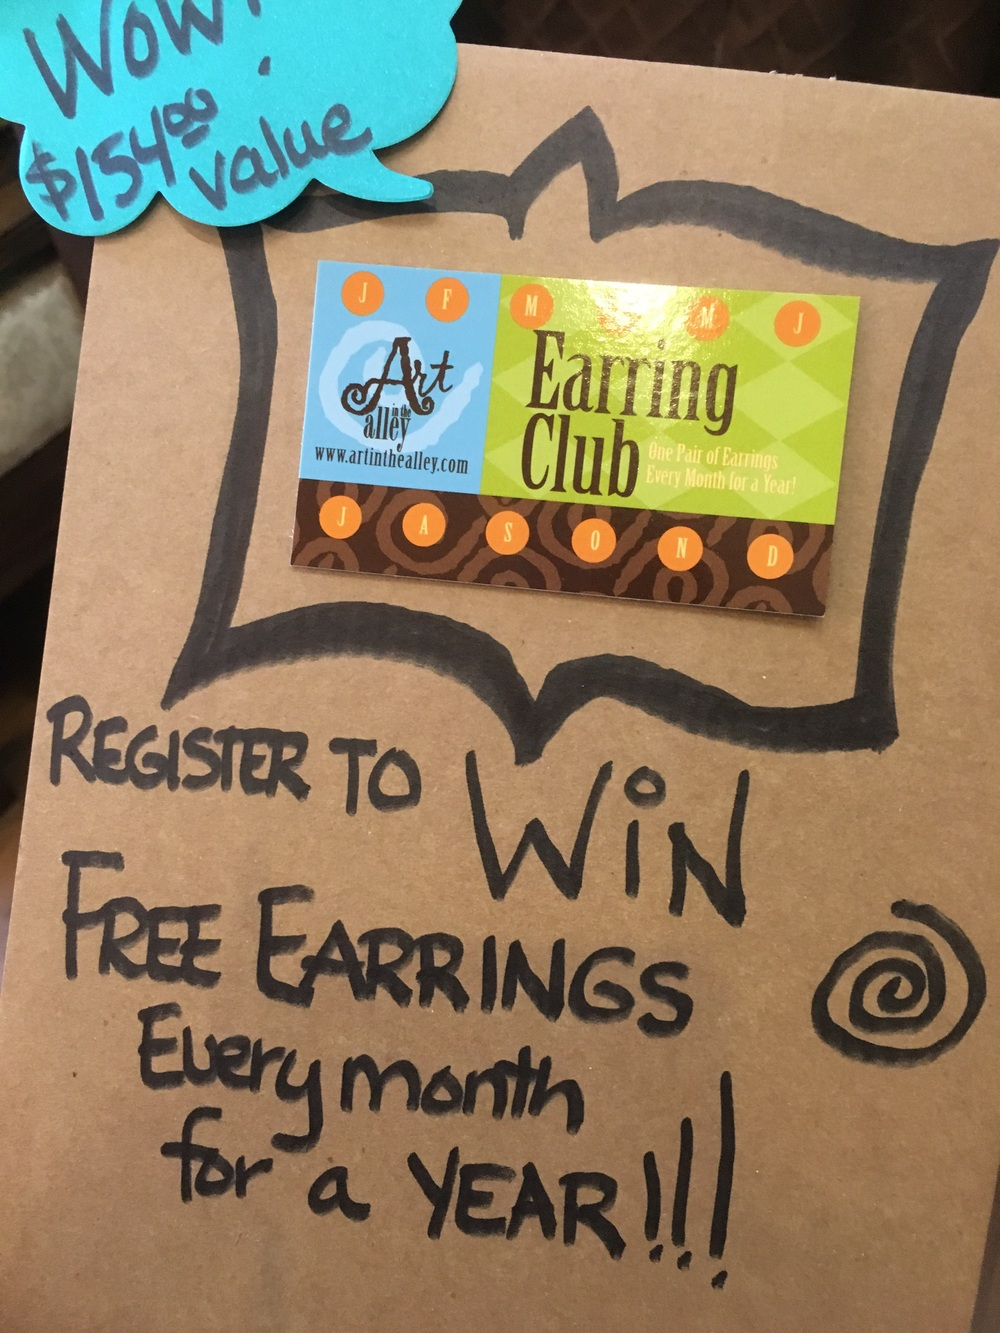 Free earrings every month for a year!